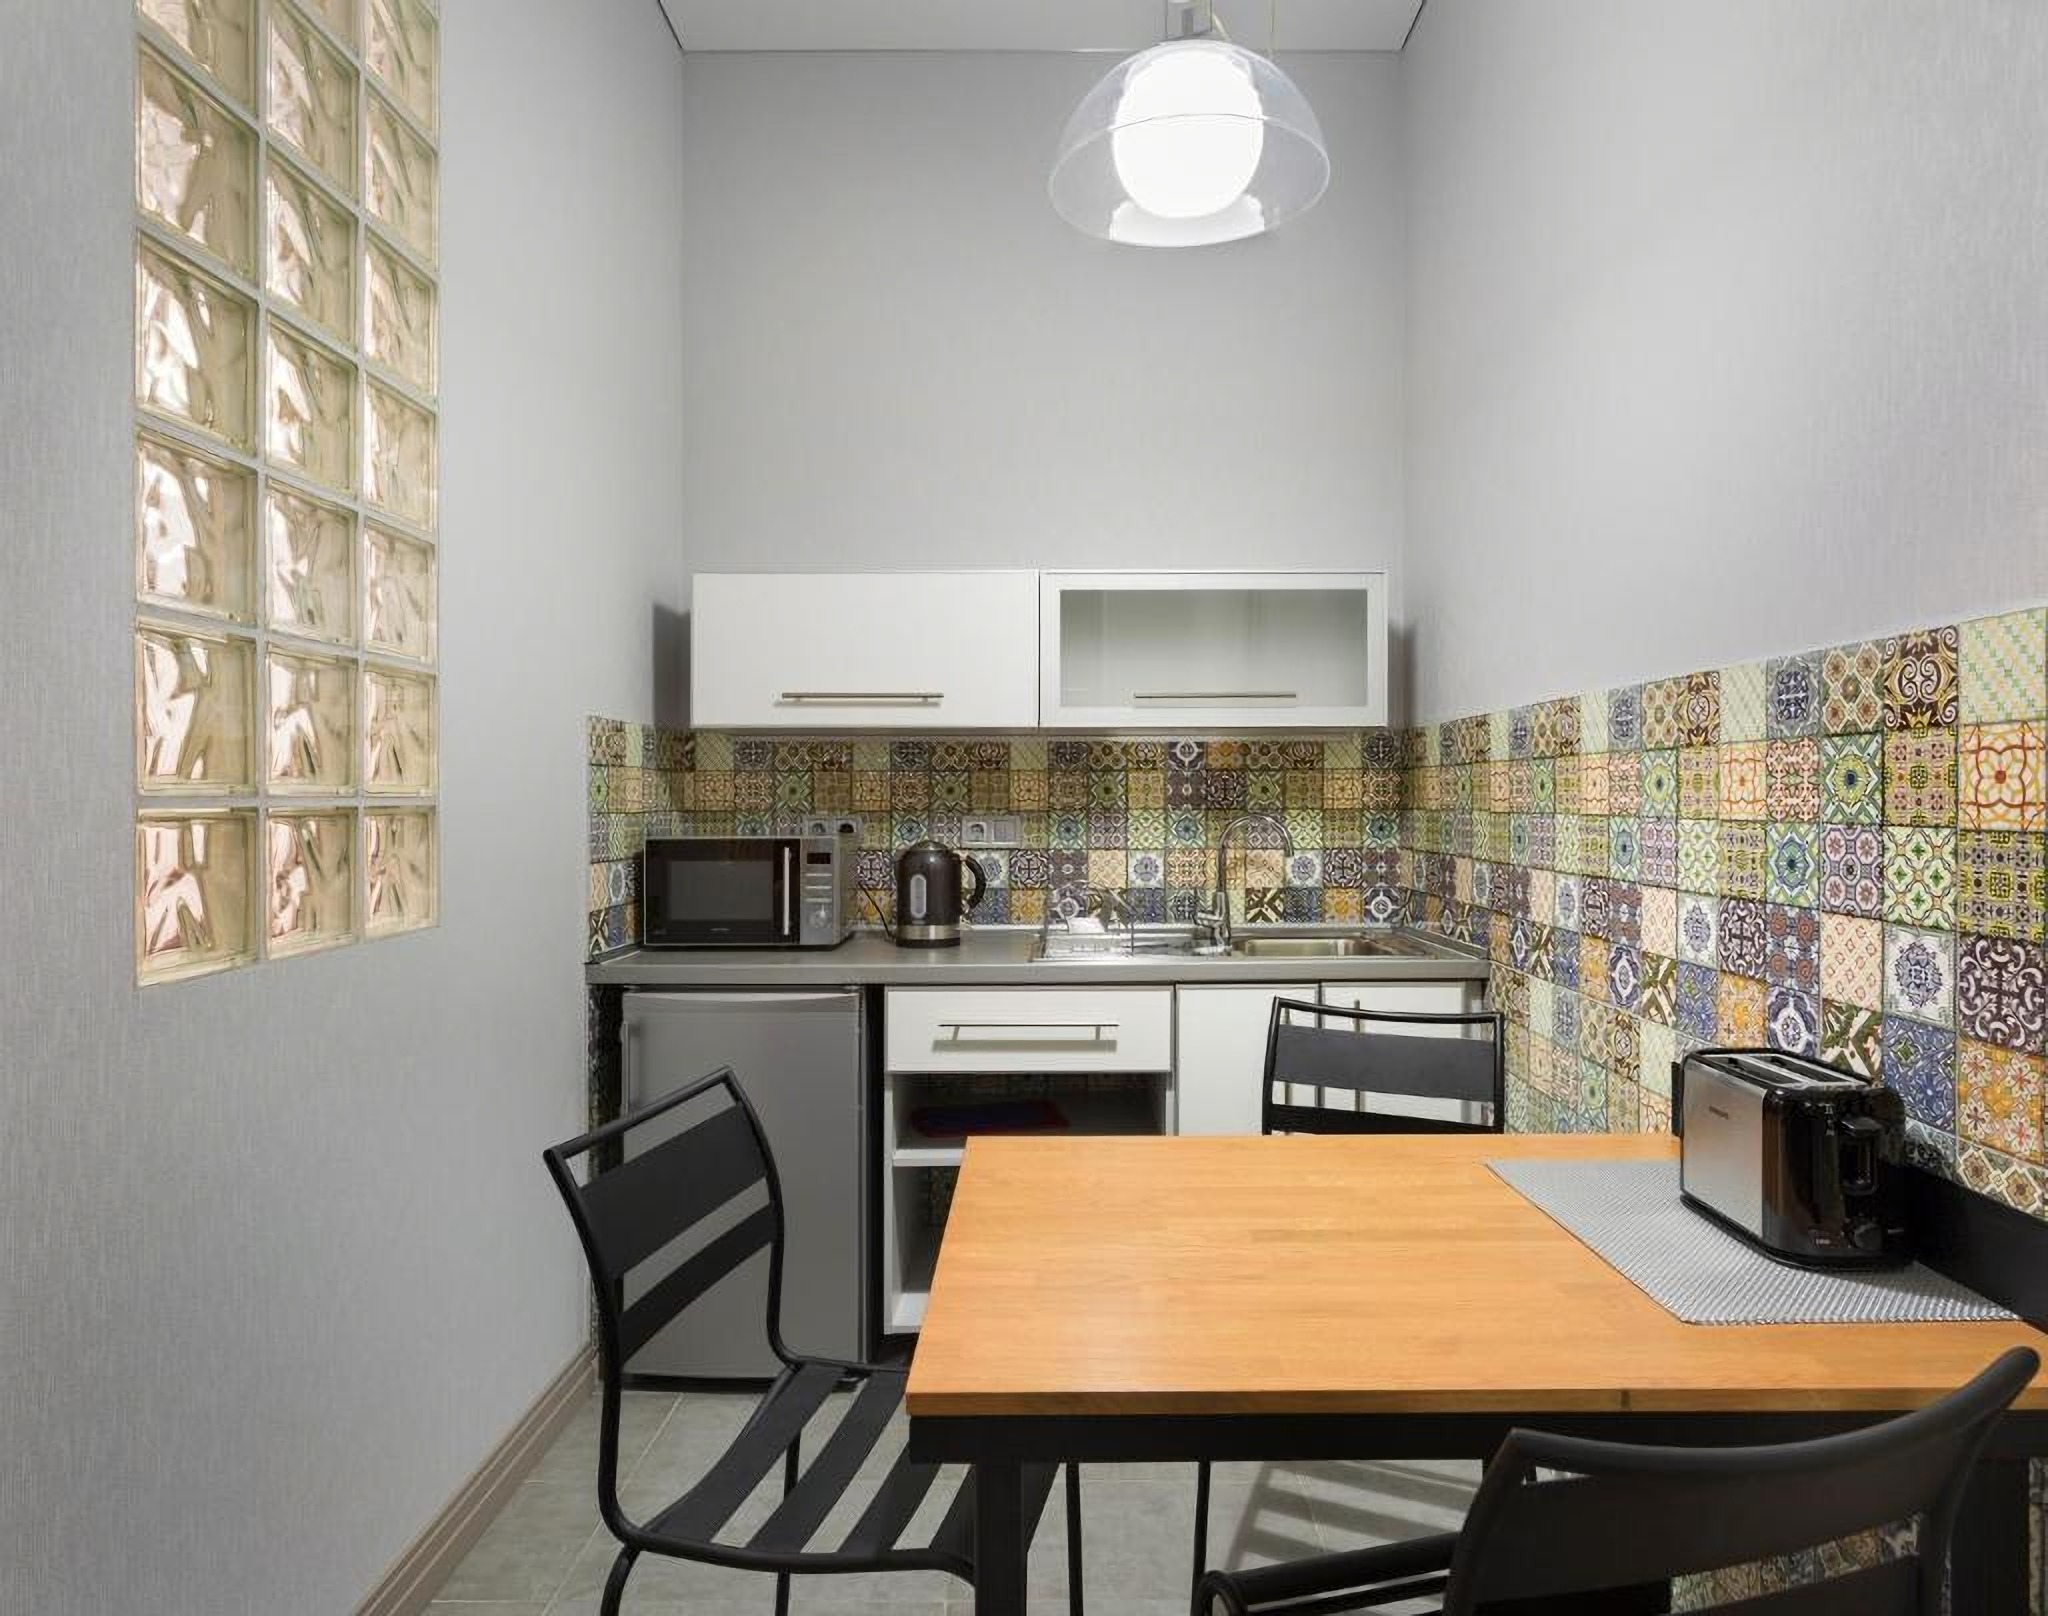 A Kitchen in a room